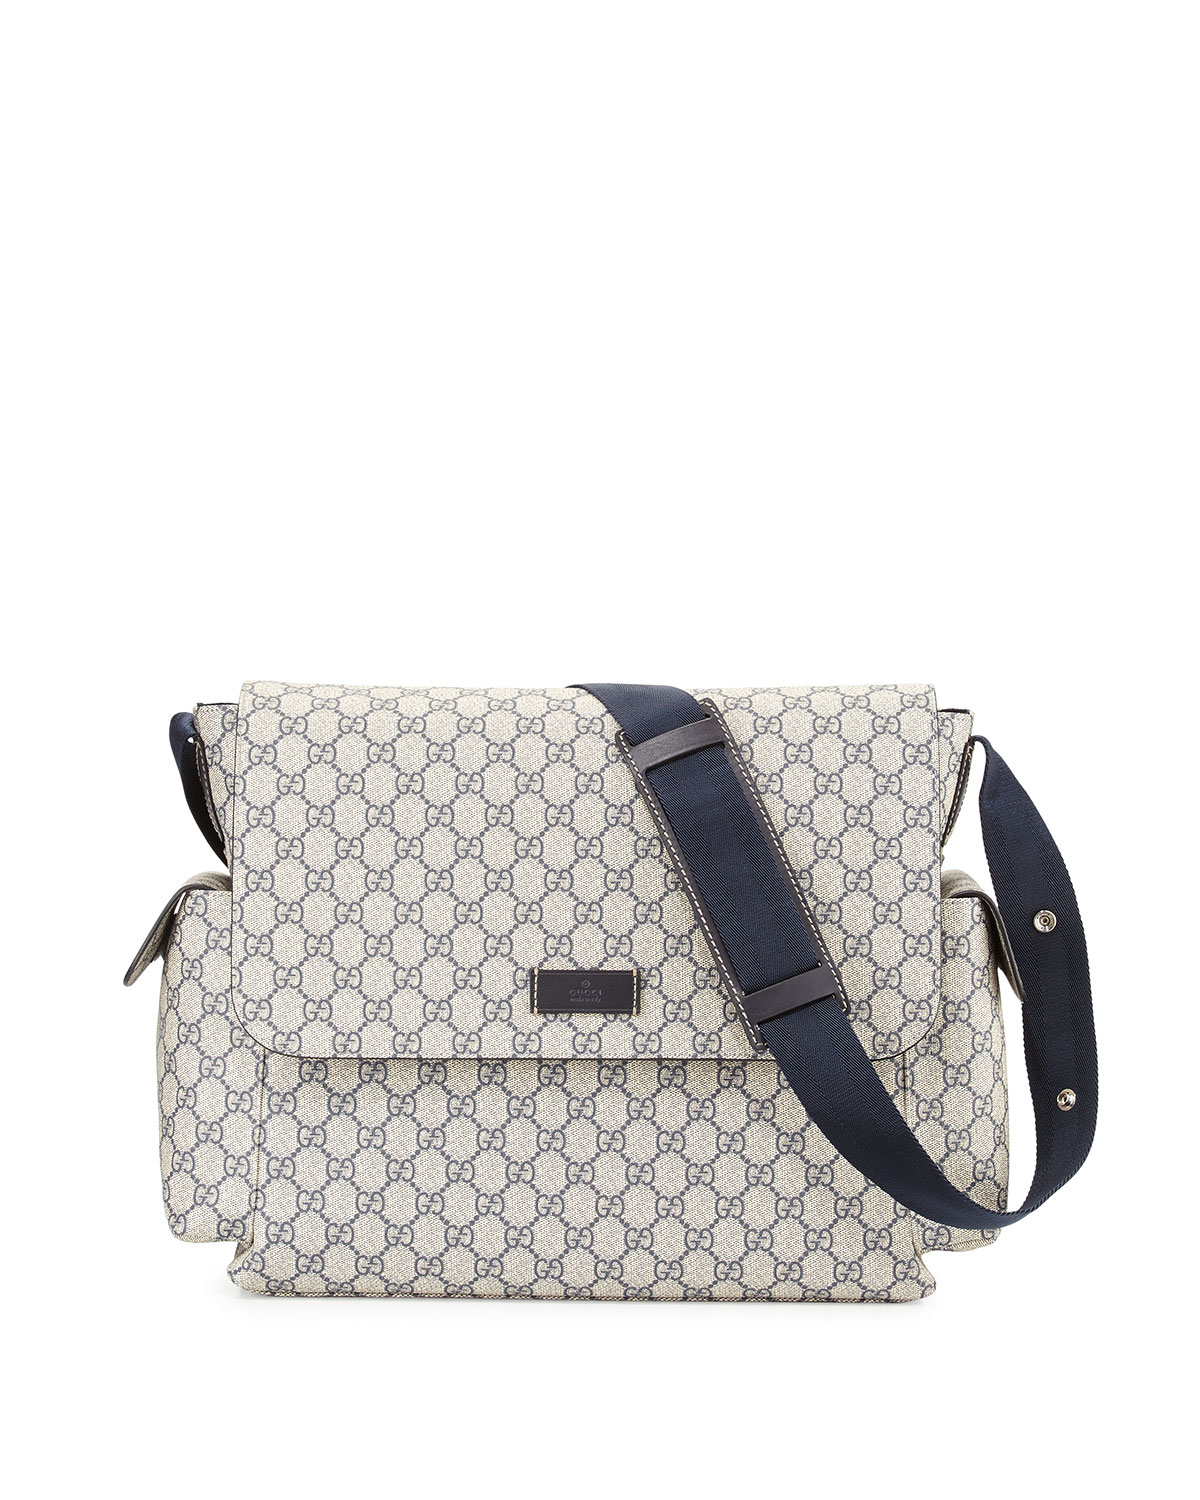 3fdf4b60e3bbc5 Gucci Faux Leather Bag | Stanford Center for Opportunity Policy in ...